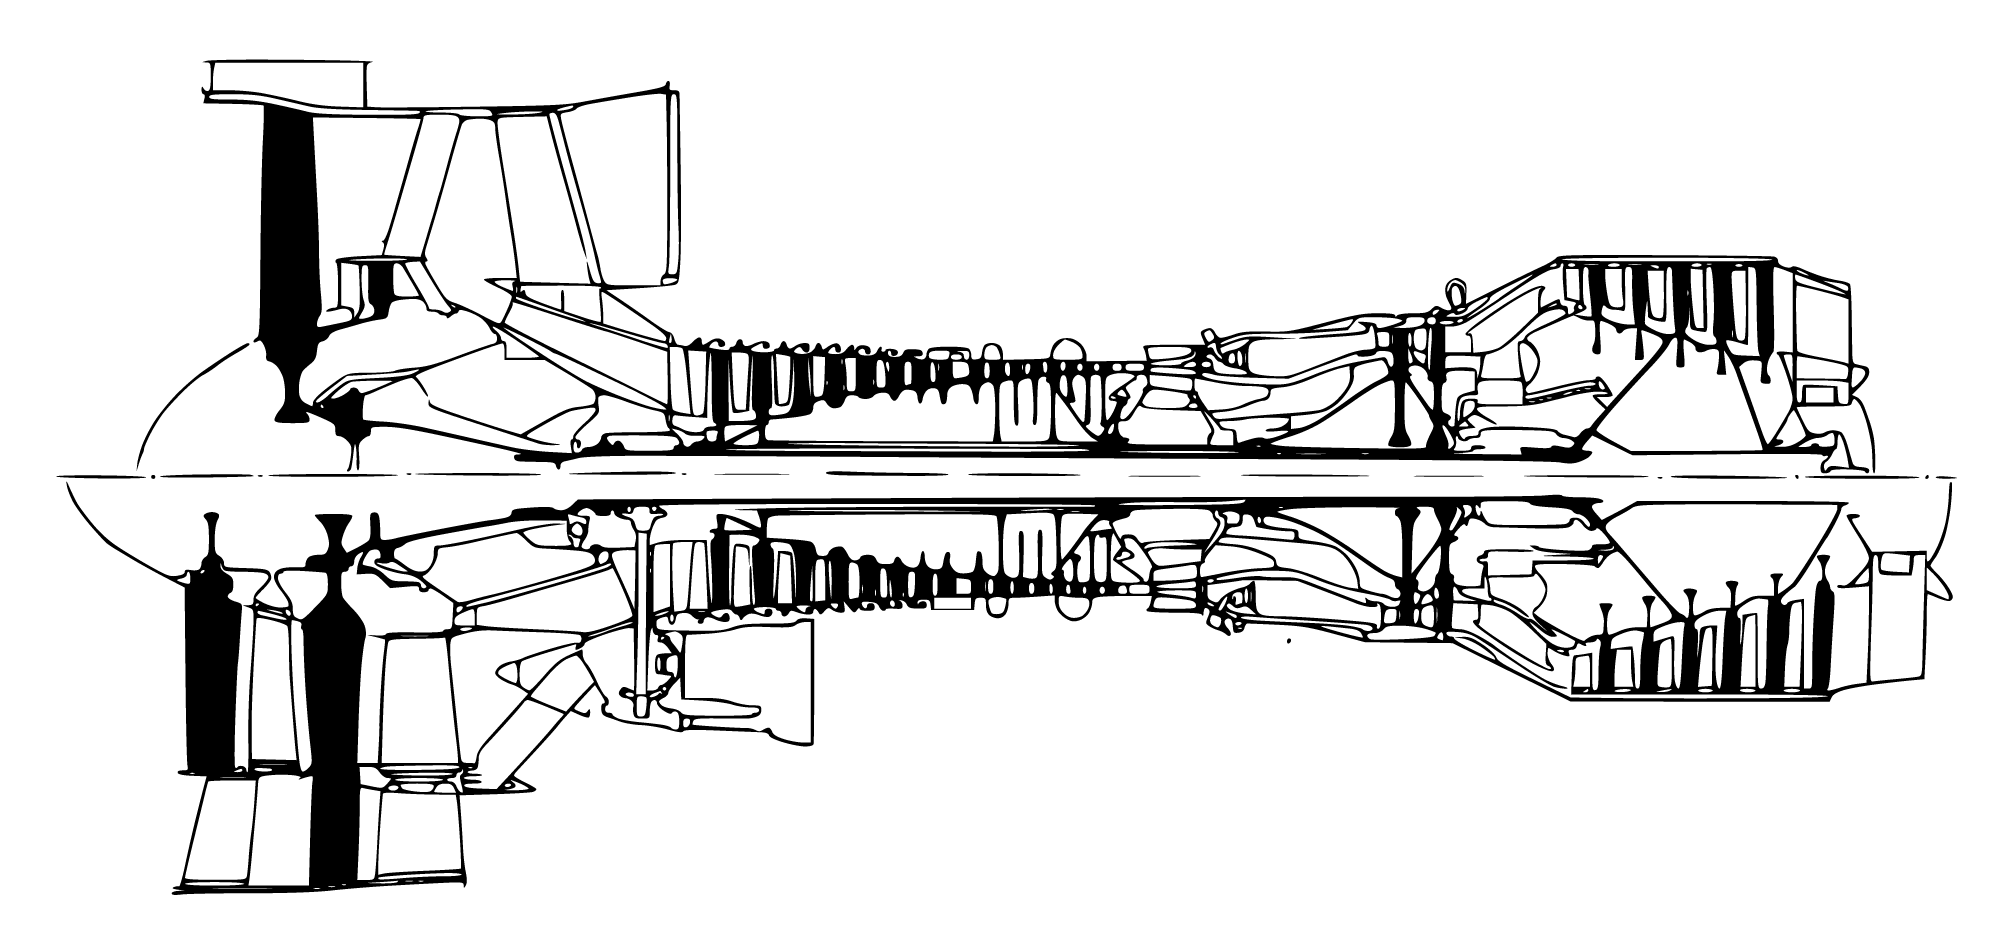 Turbo Jet Engine Schematic